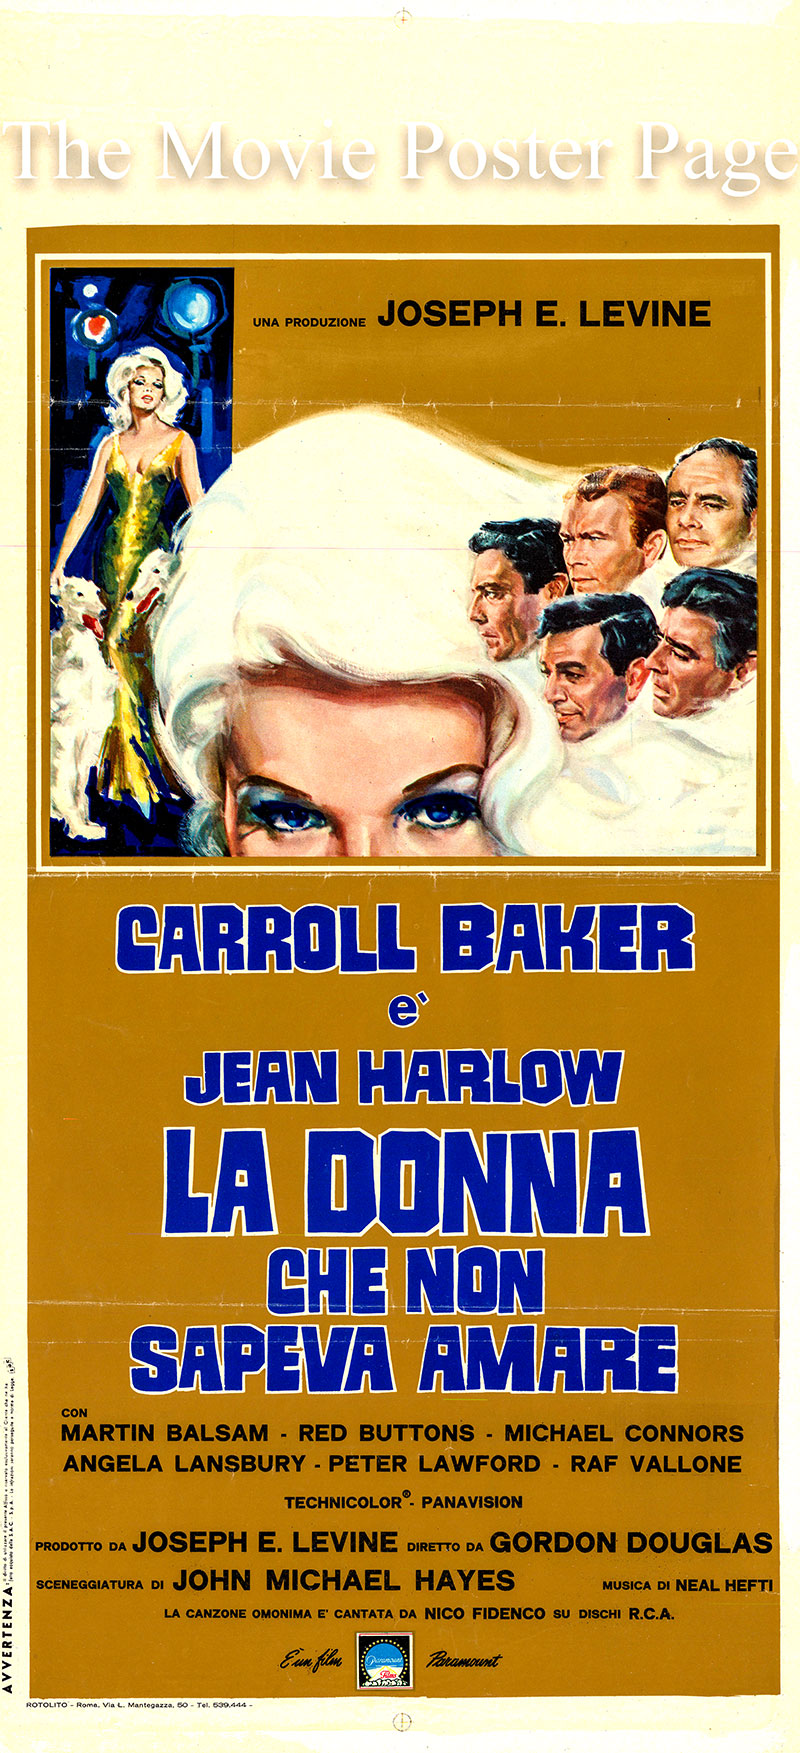 Pictured is an Italian locandina poster for the 1965 Gordon Douglas film Harlow starring Carroll Baker as Jean Harlow.